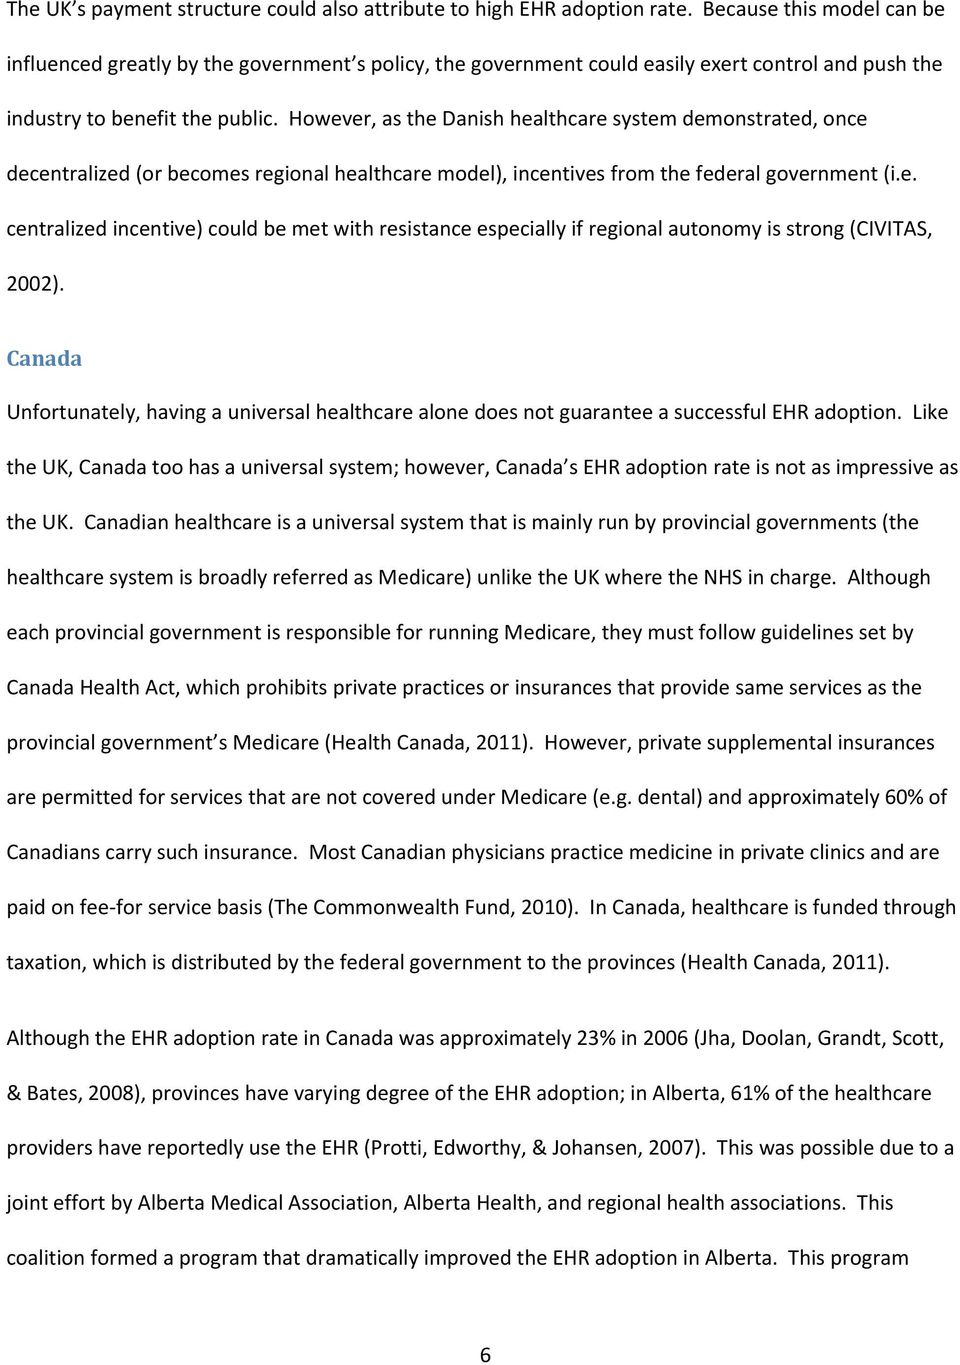 However, as the Danish healthcare system demonstrated, once decentralized (or becomes regional healthcare model), incentives from the federal government (i.e. centralized incentive) could be met with resistance especially if regional autonomy is strong (CIVITAS, 2002).